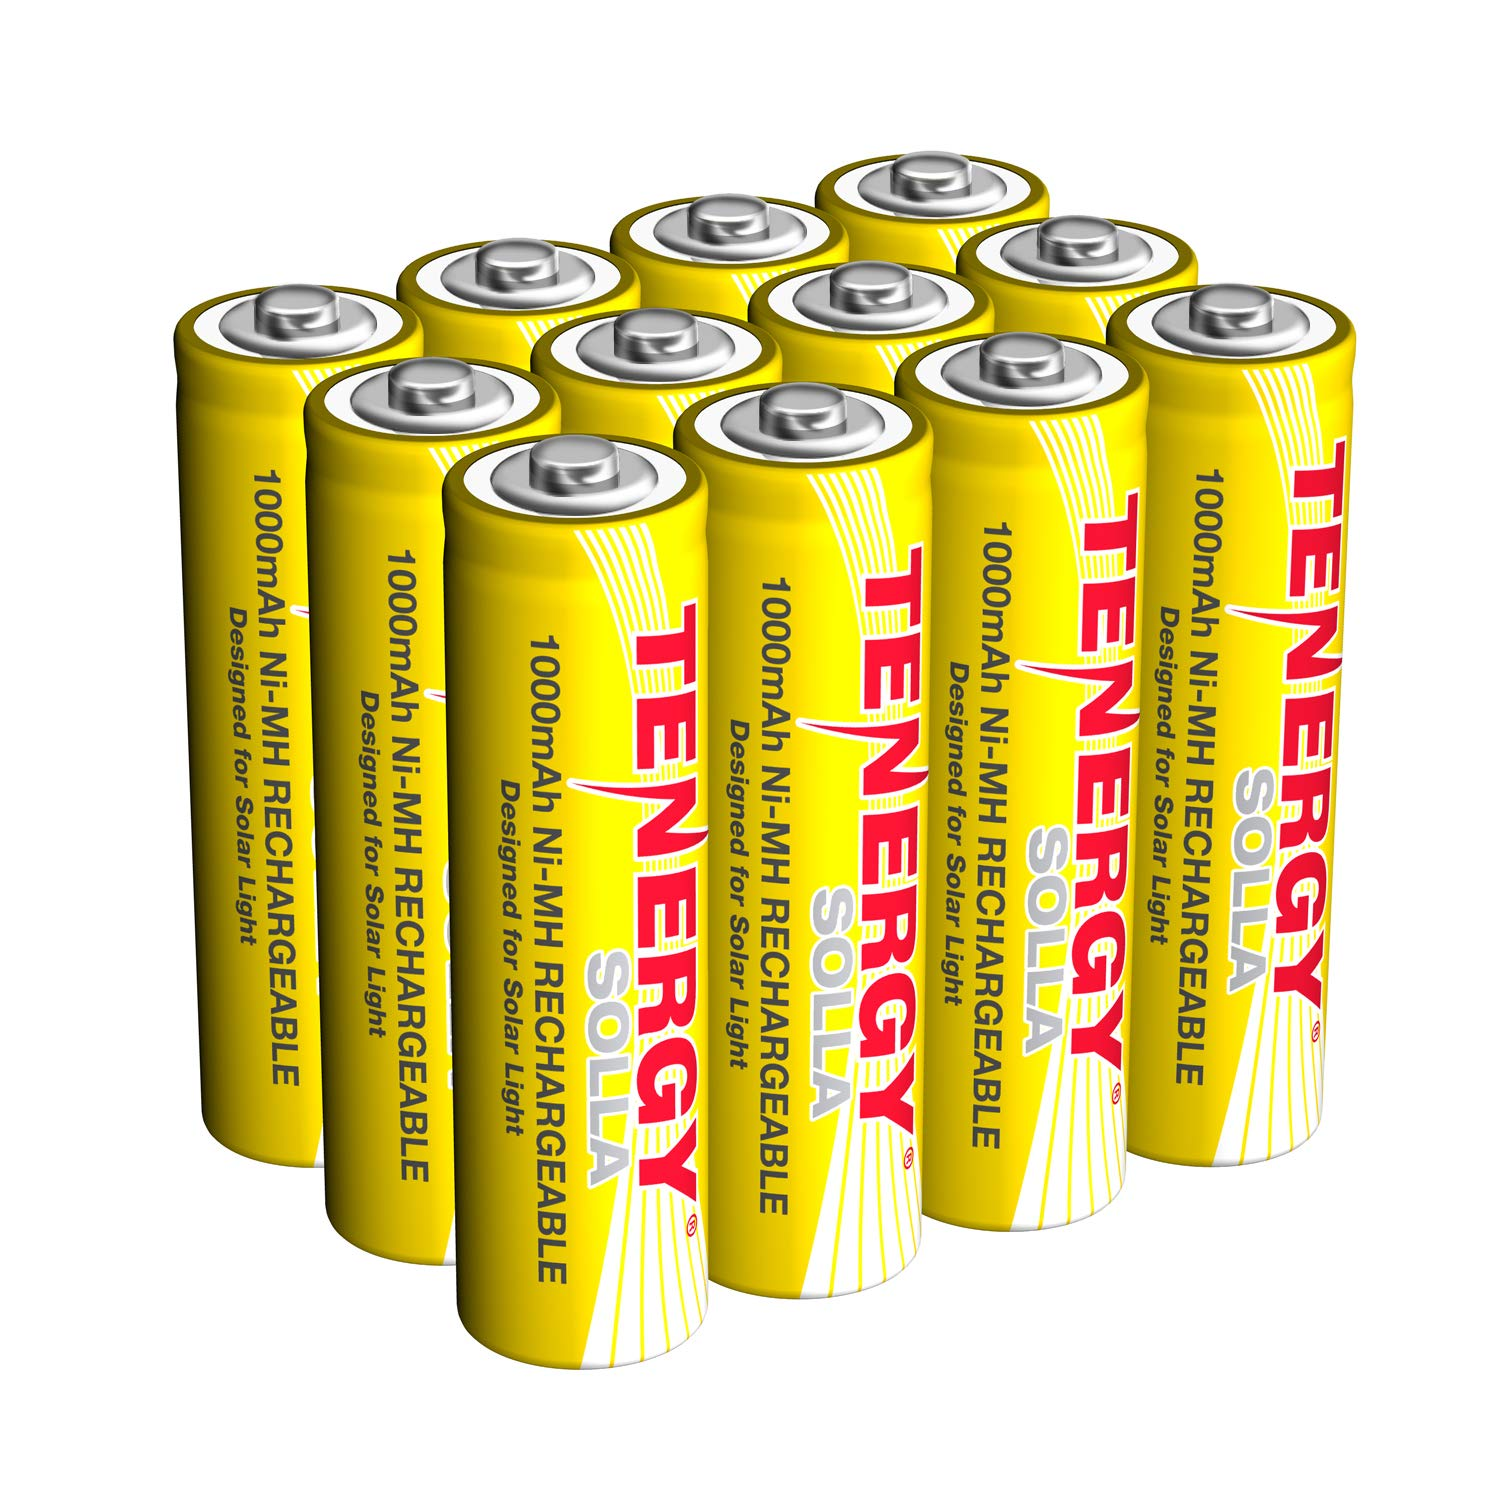 Tenergy Rechargeable Batteries Durability Performance